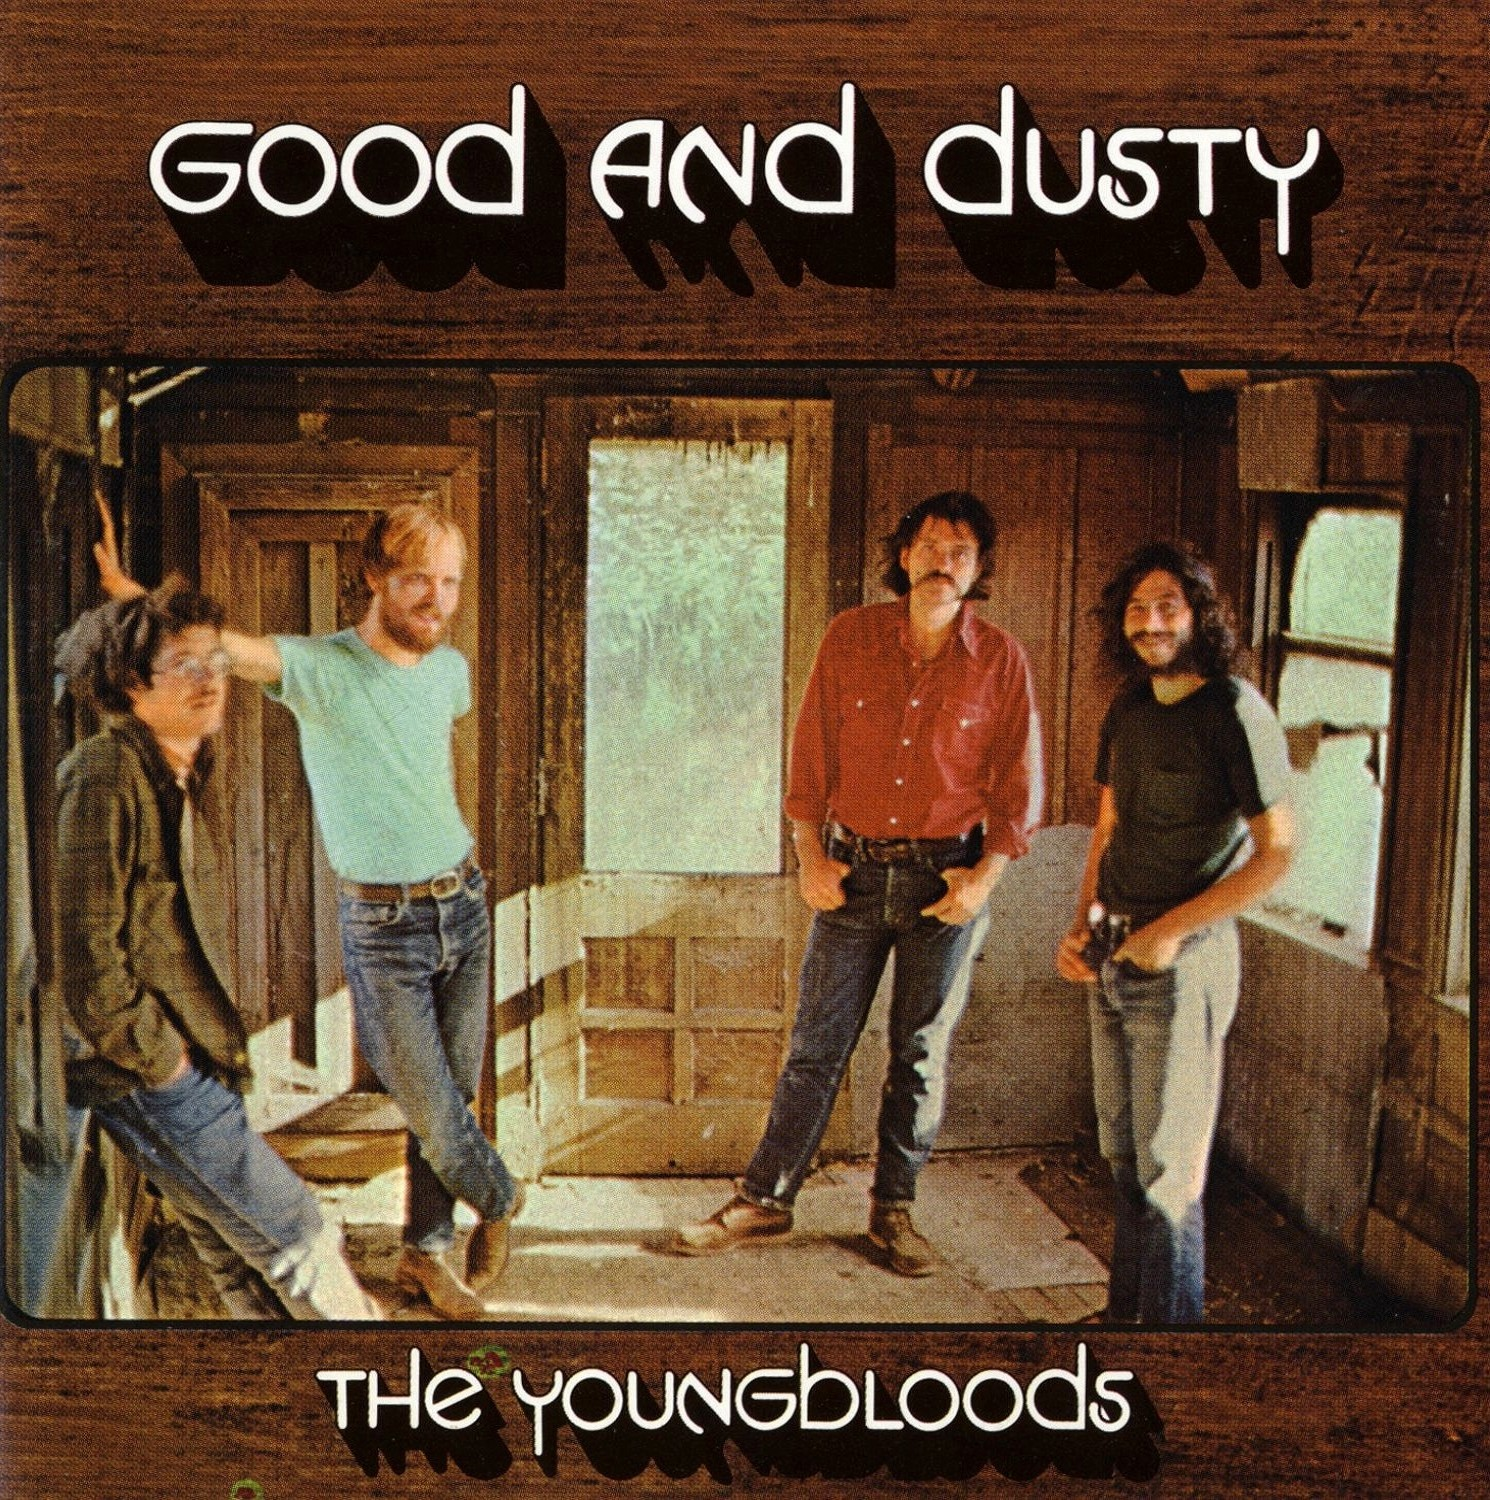 Dereksmusicblog files wordpress together with Jesse colin young additionally The Youngbloods Good And Dusty 1971 in addition Vinyl Records furthermore Jesse Colin Young Light Shine P 118507. on light shine jesse colin young